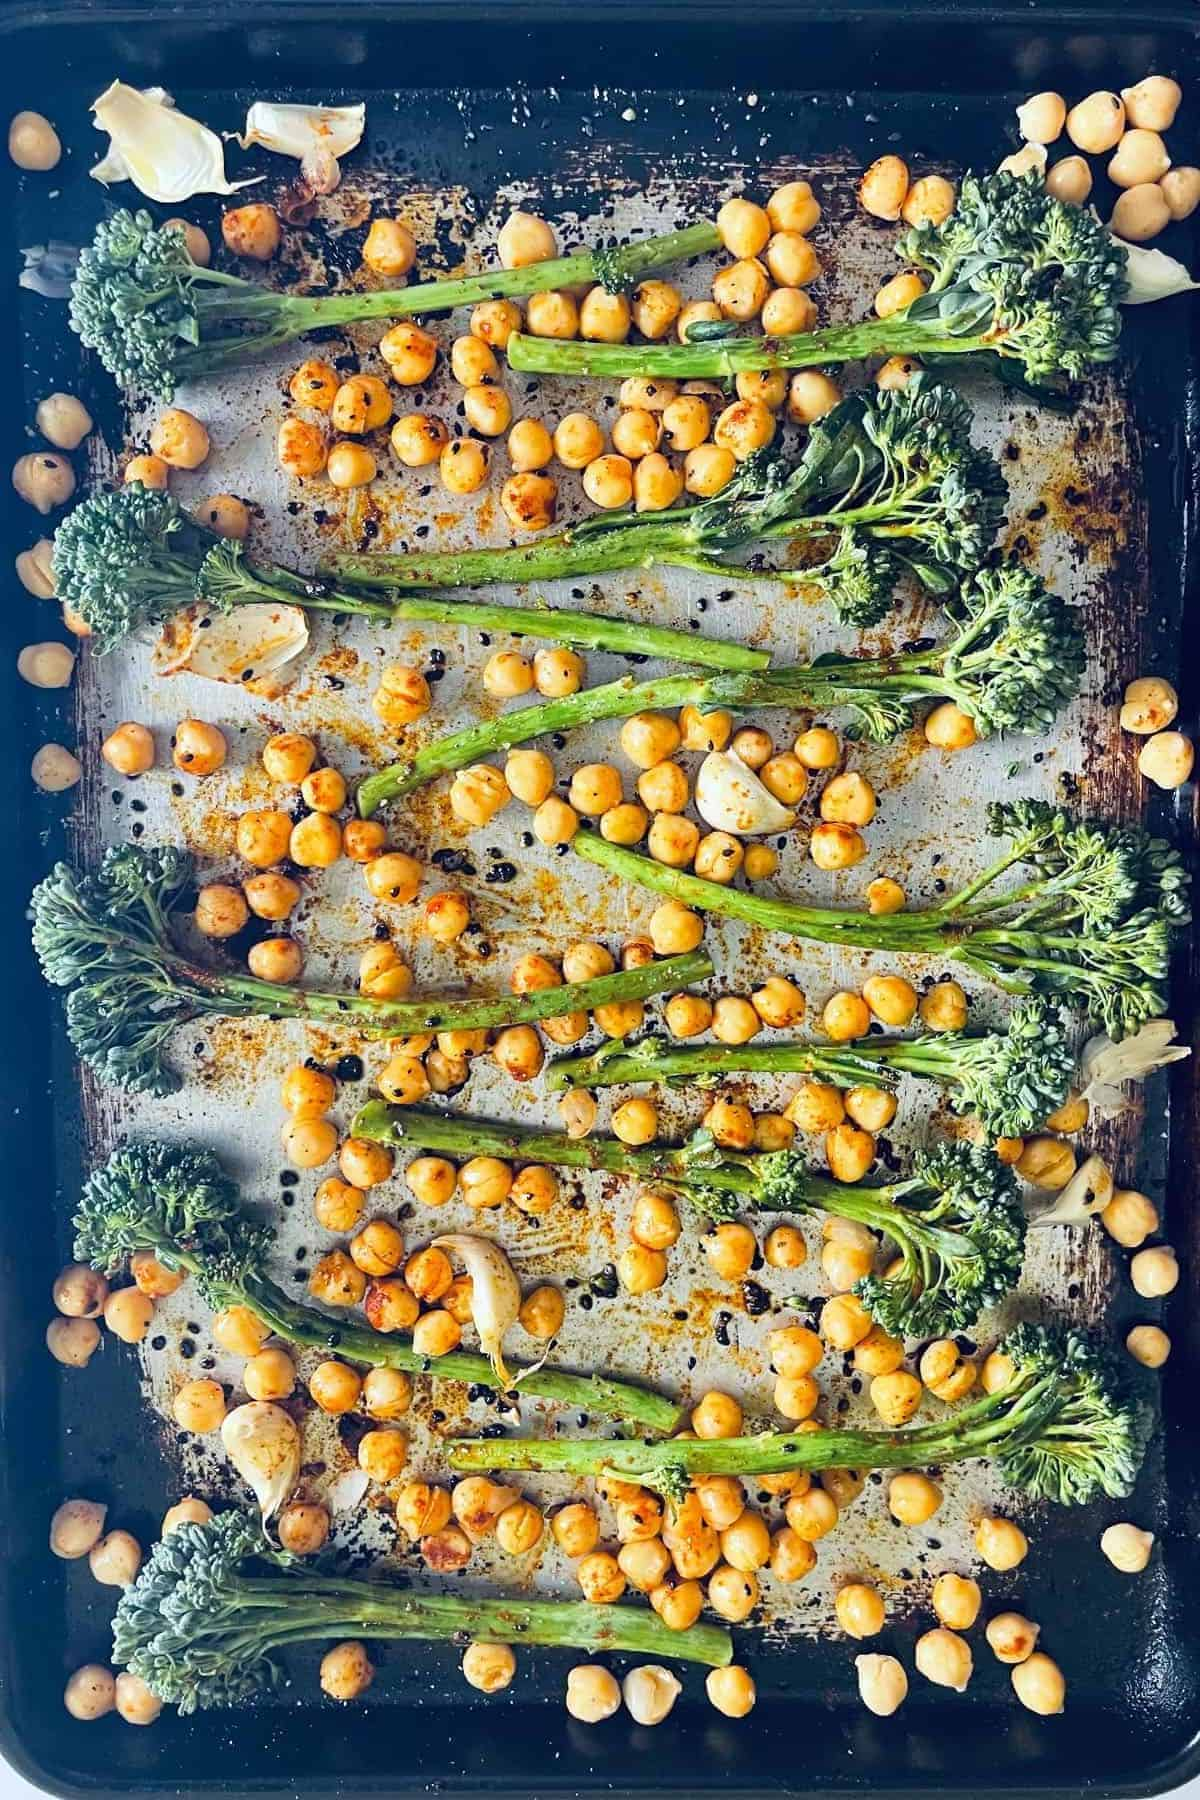 Broccolini and Chickpeas on Sheet pan